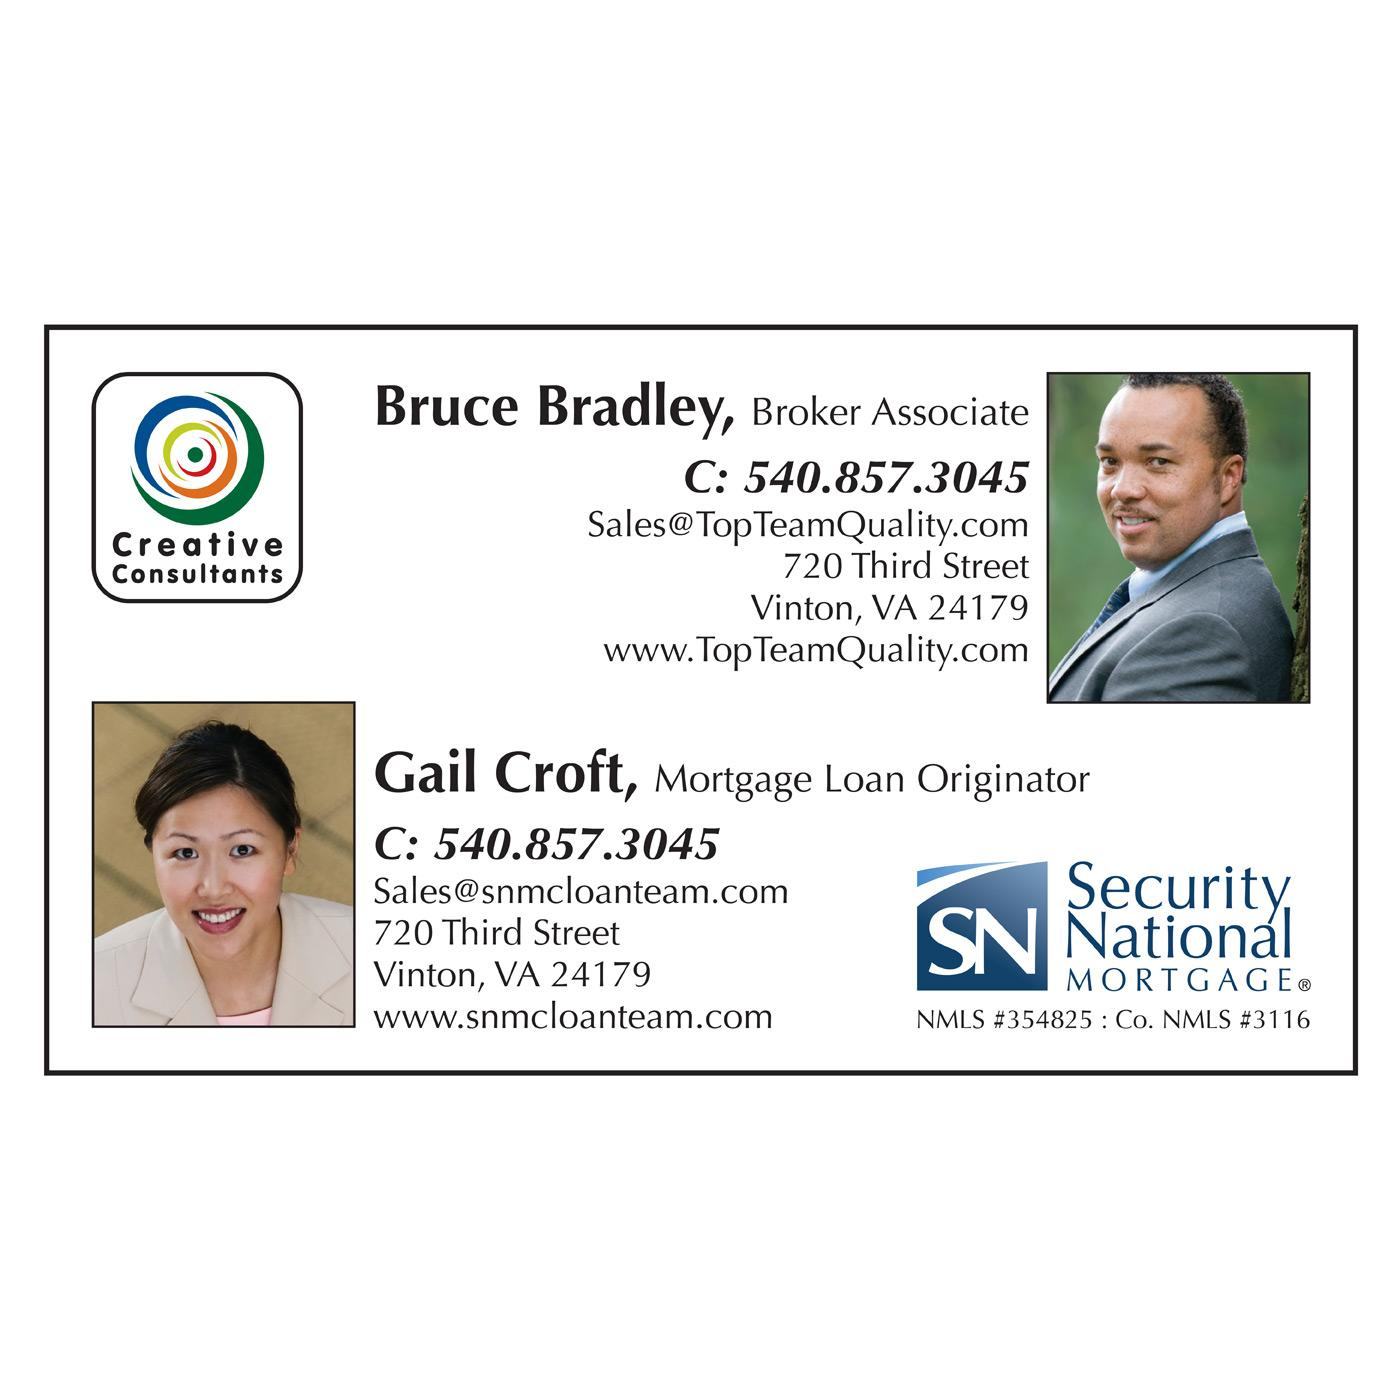 Security National Mortgage Card